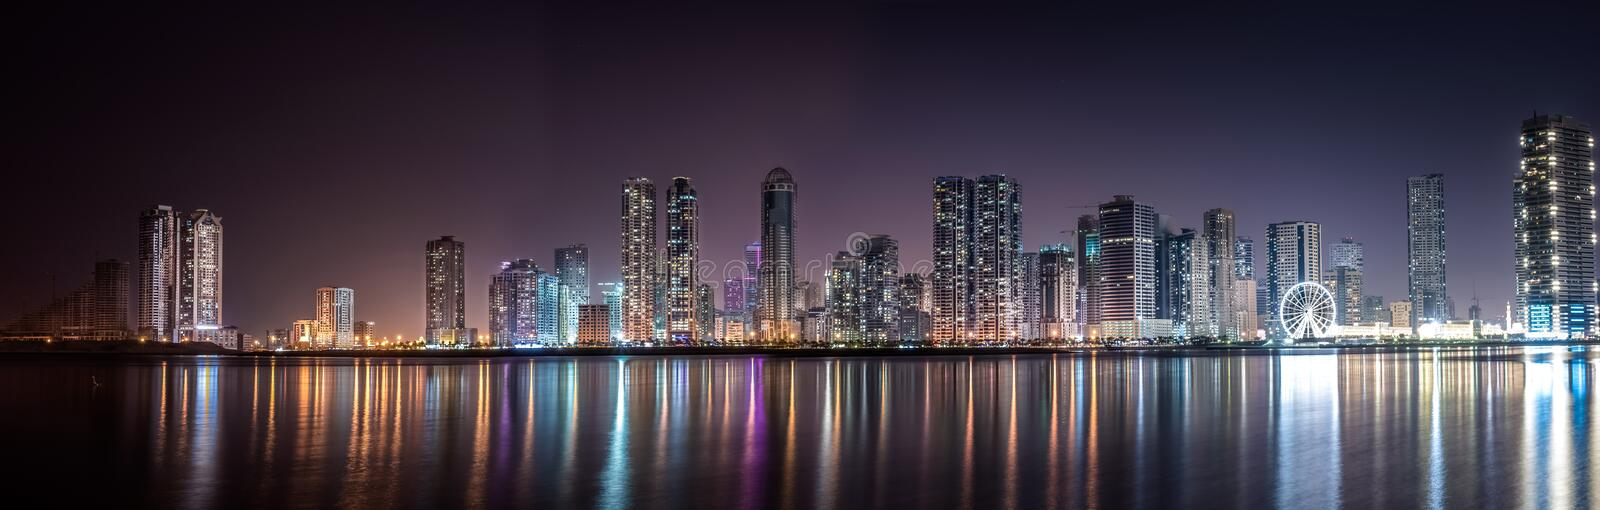 Panoramic View Of City Lit Up At Night Free Public Domain Cc0 Image